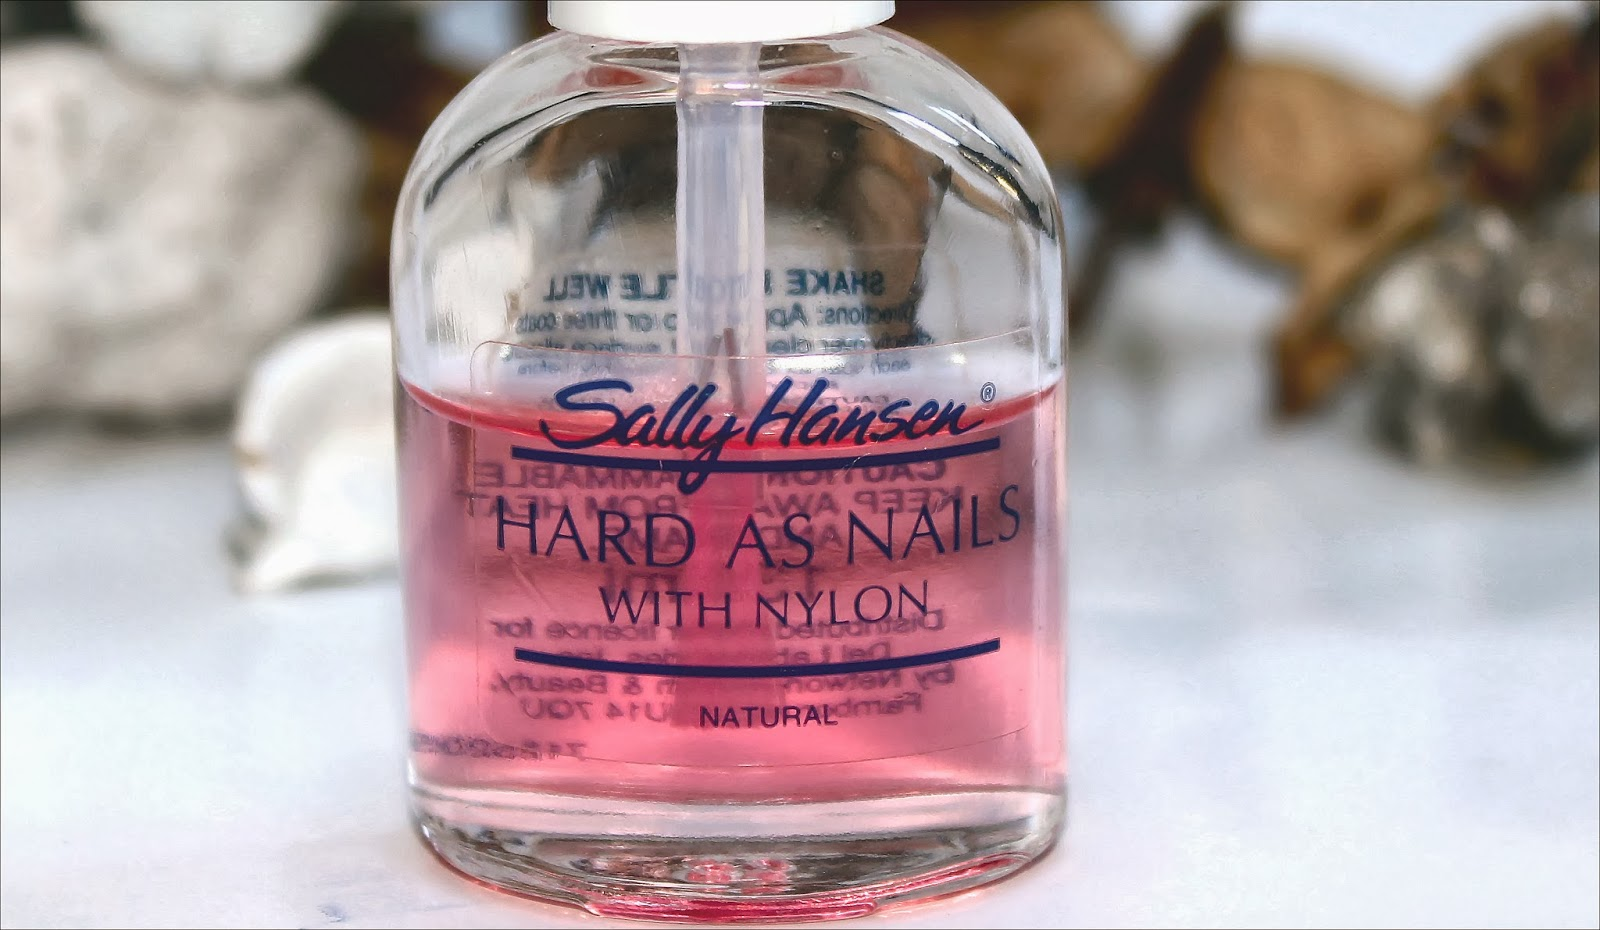 Sally Hanson Hard as Nails